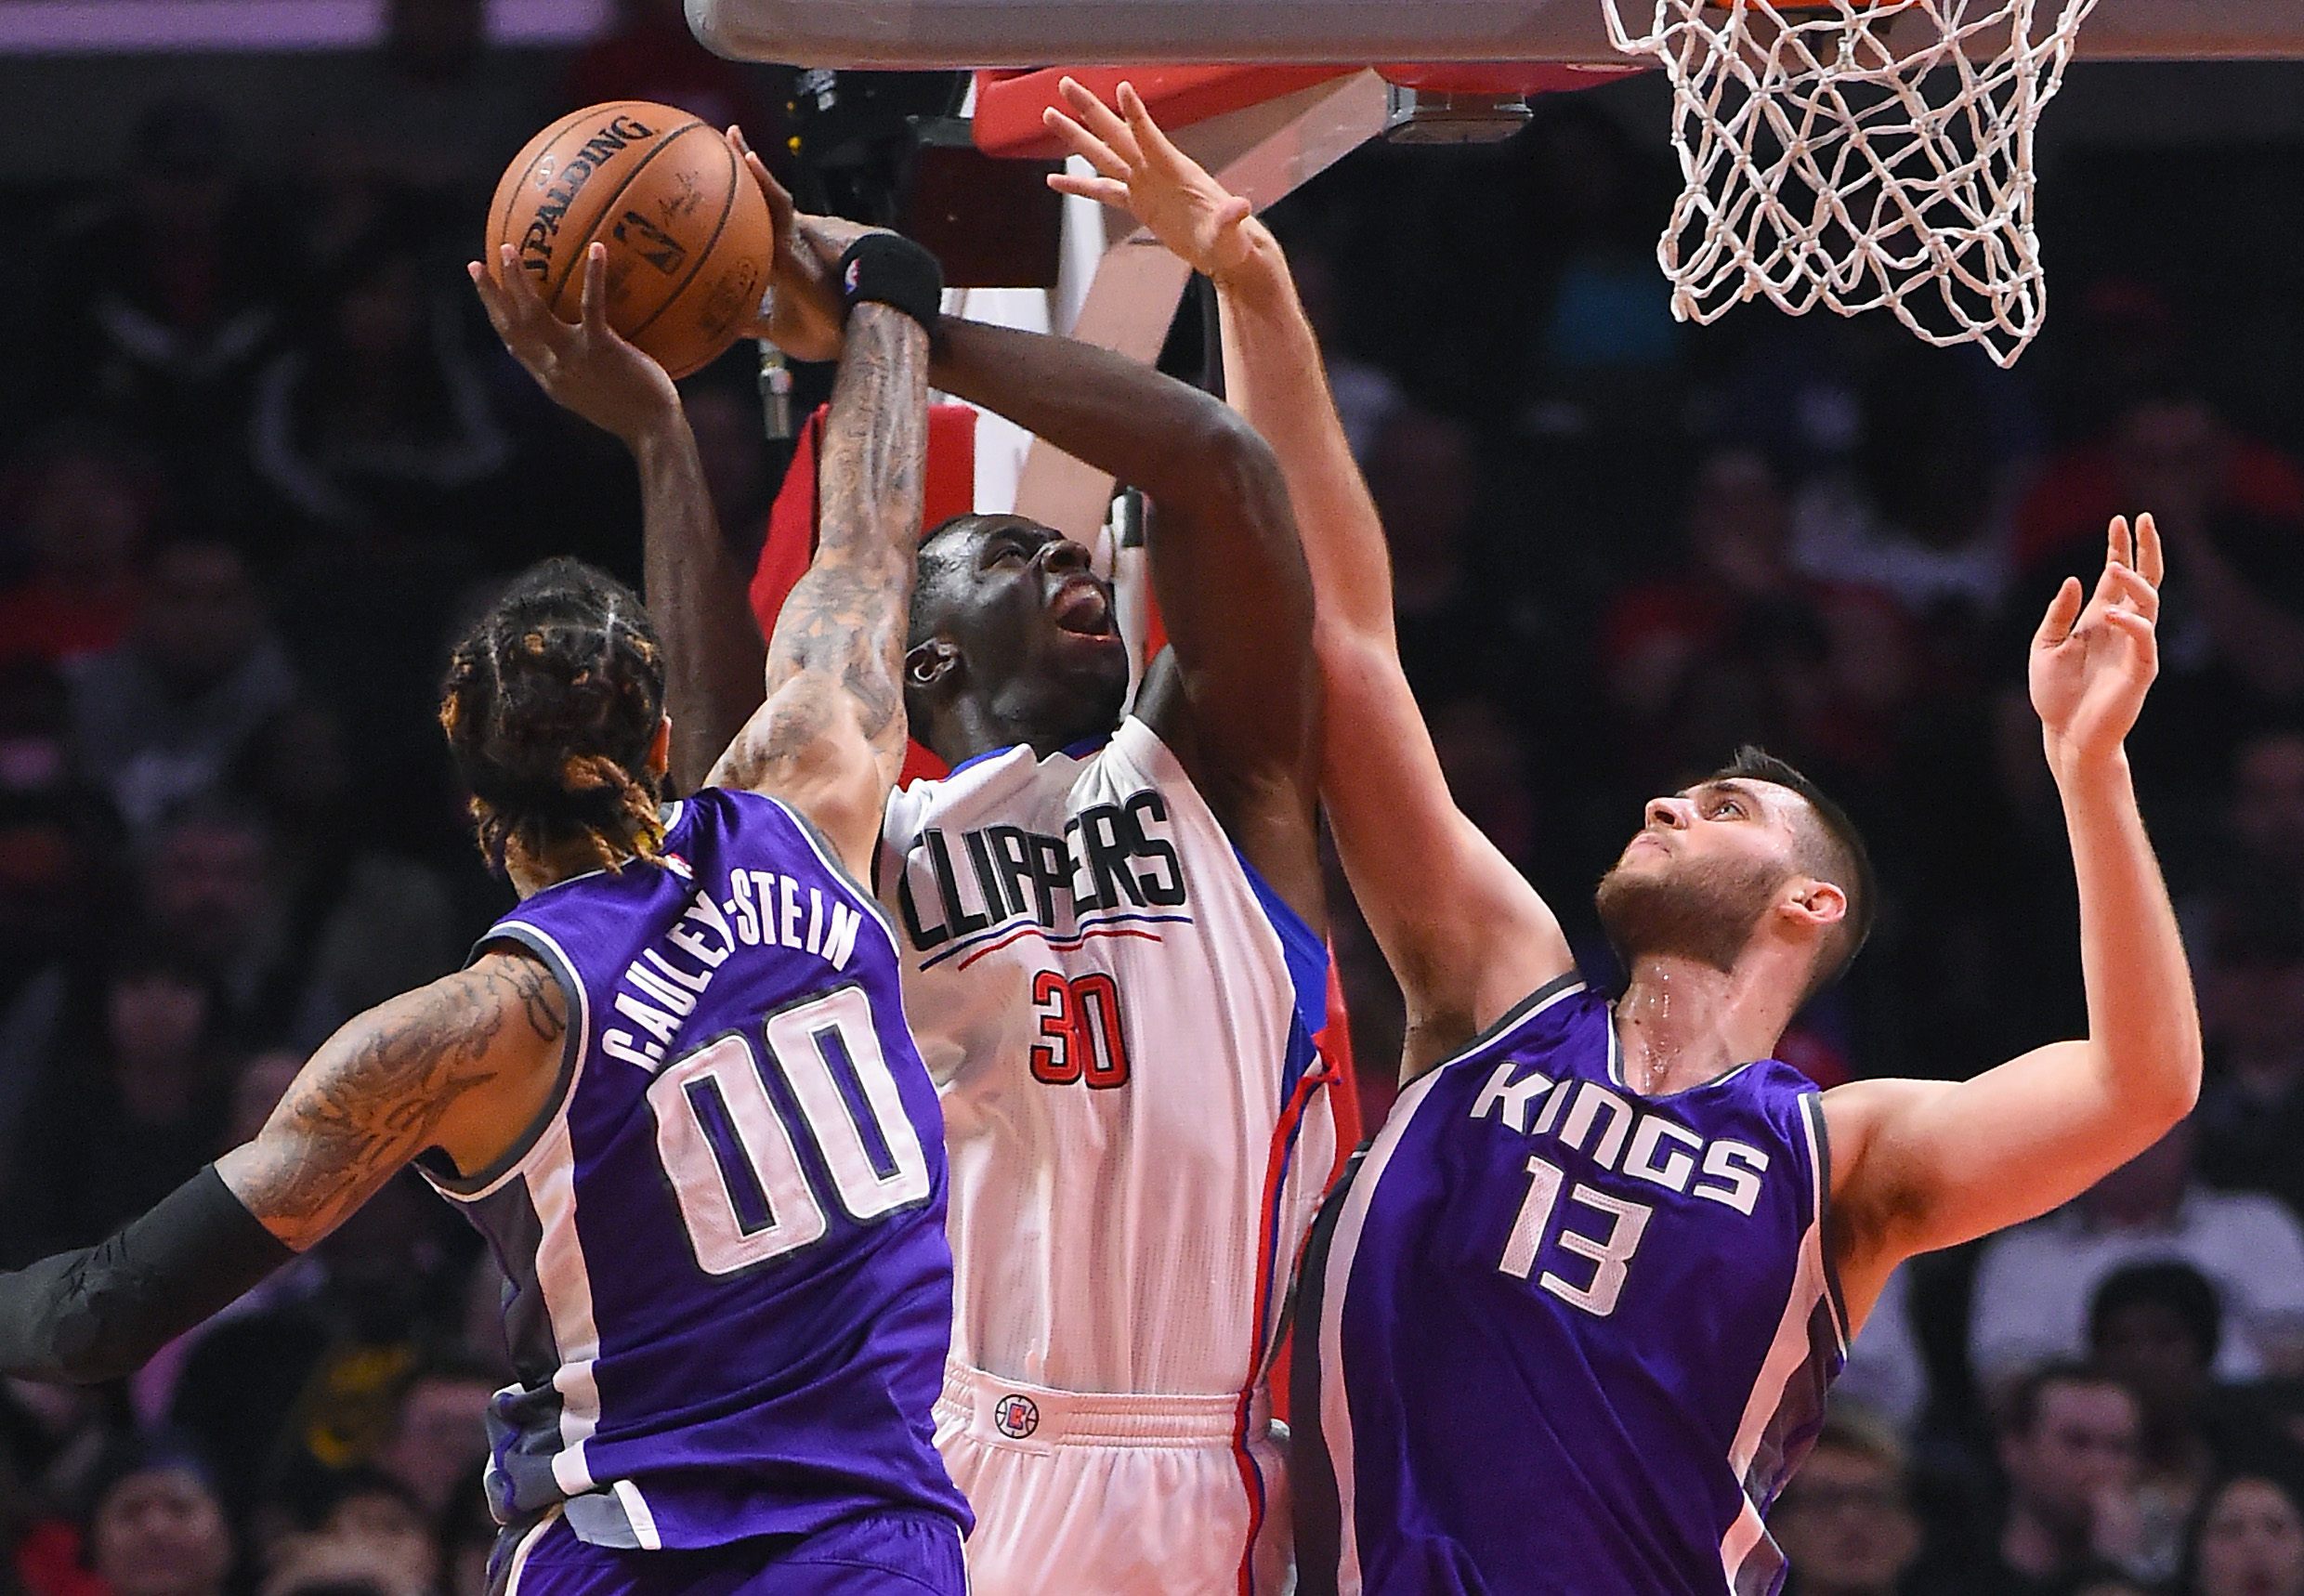 9972475-nba-sacramento-kings-at-los-angeles-clippers